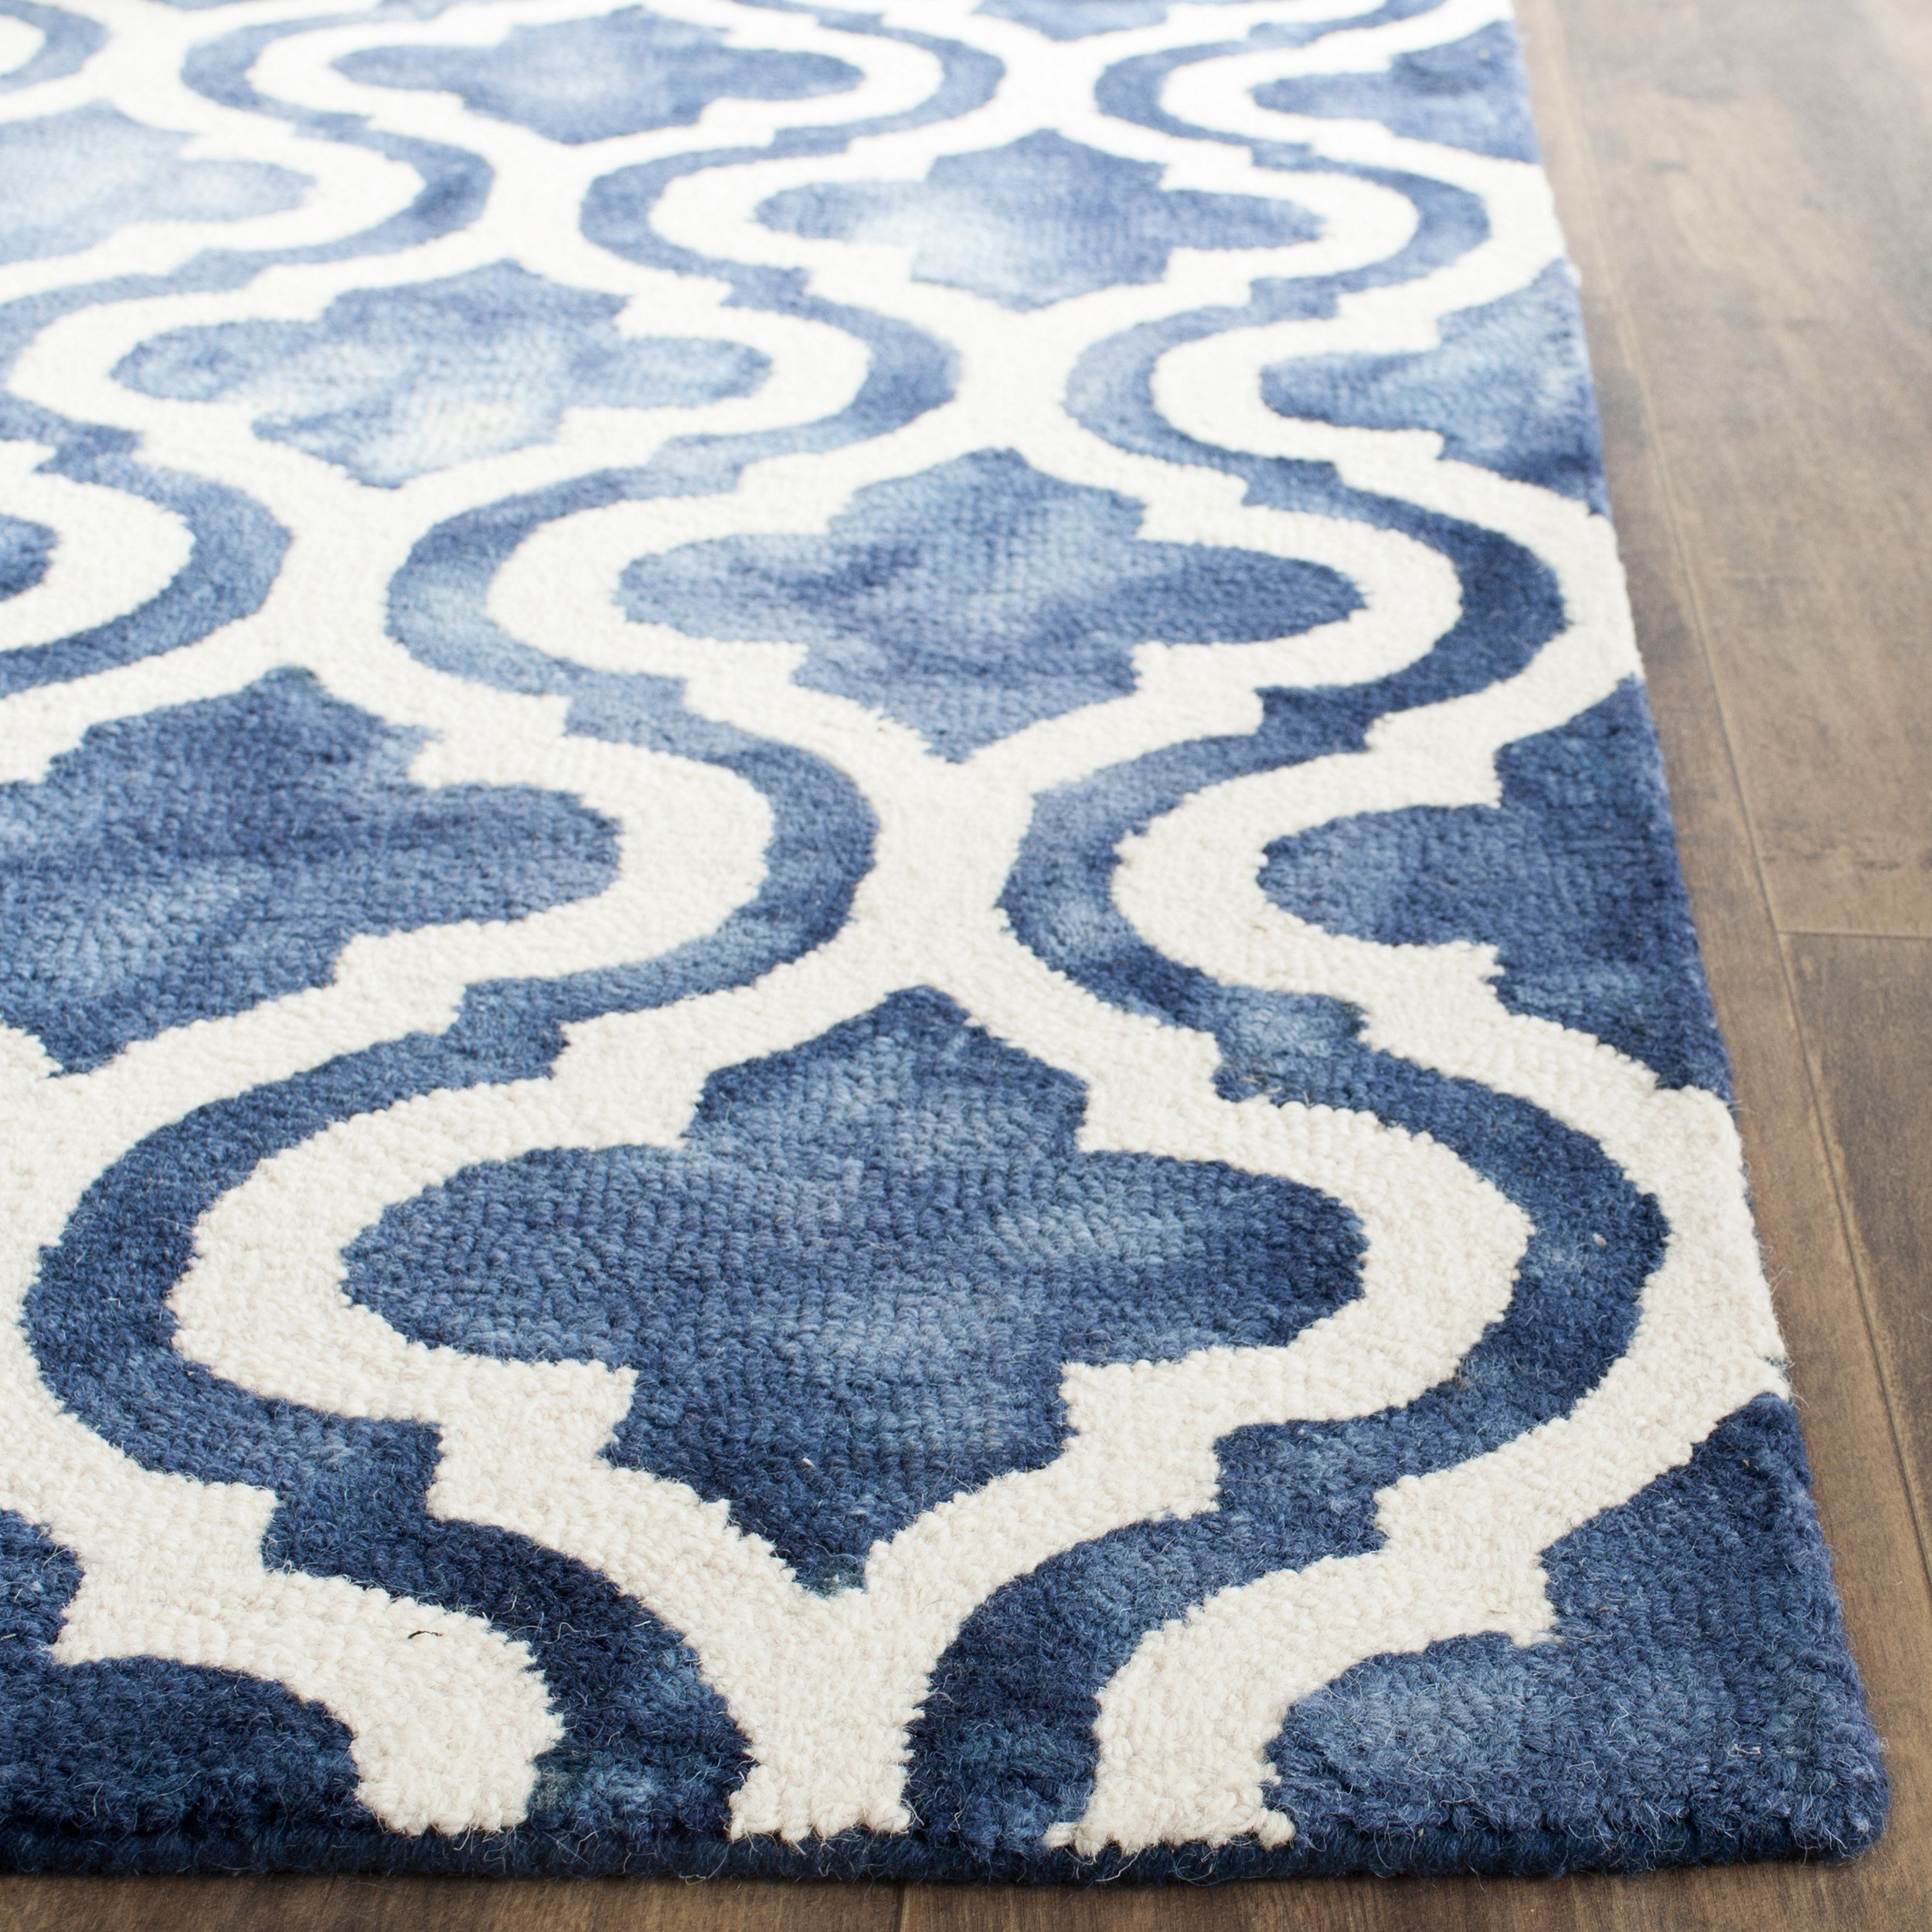 Safavieh Dip Dye Collection Ddy537n Handmade Geometric Moroccan Watercolor Navy And Ivory Wool Area Rug 2 6 X 4